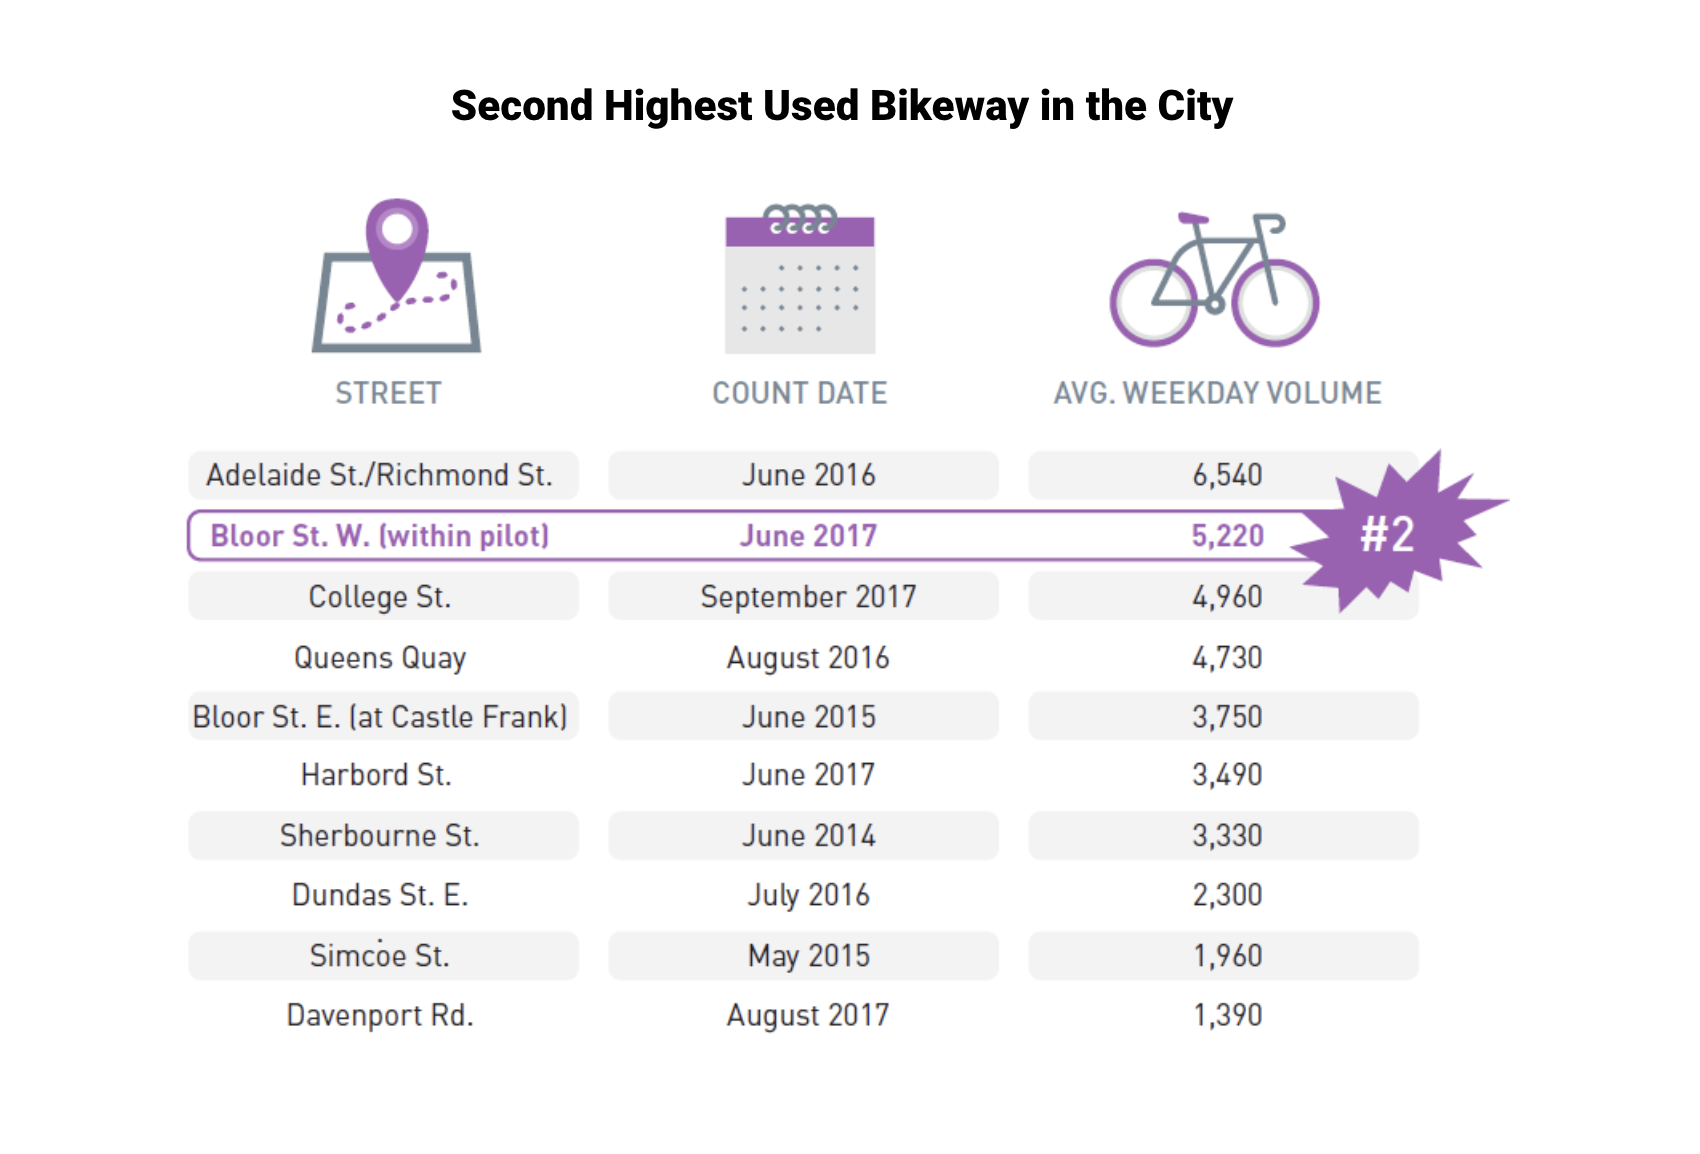 Despite being a pilot project, the Bloor bike lanes are already among the most popular in the city. Image via City of Toronto